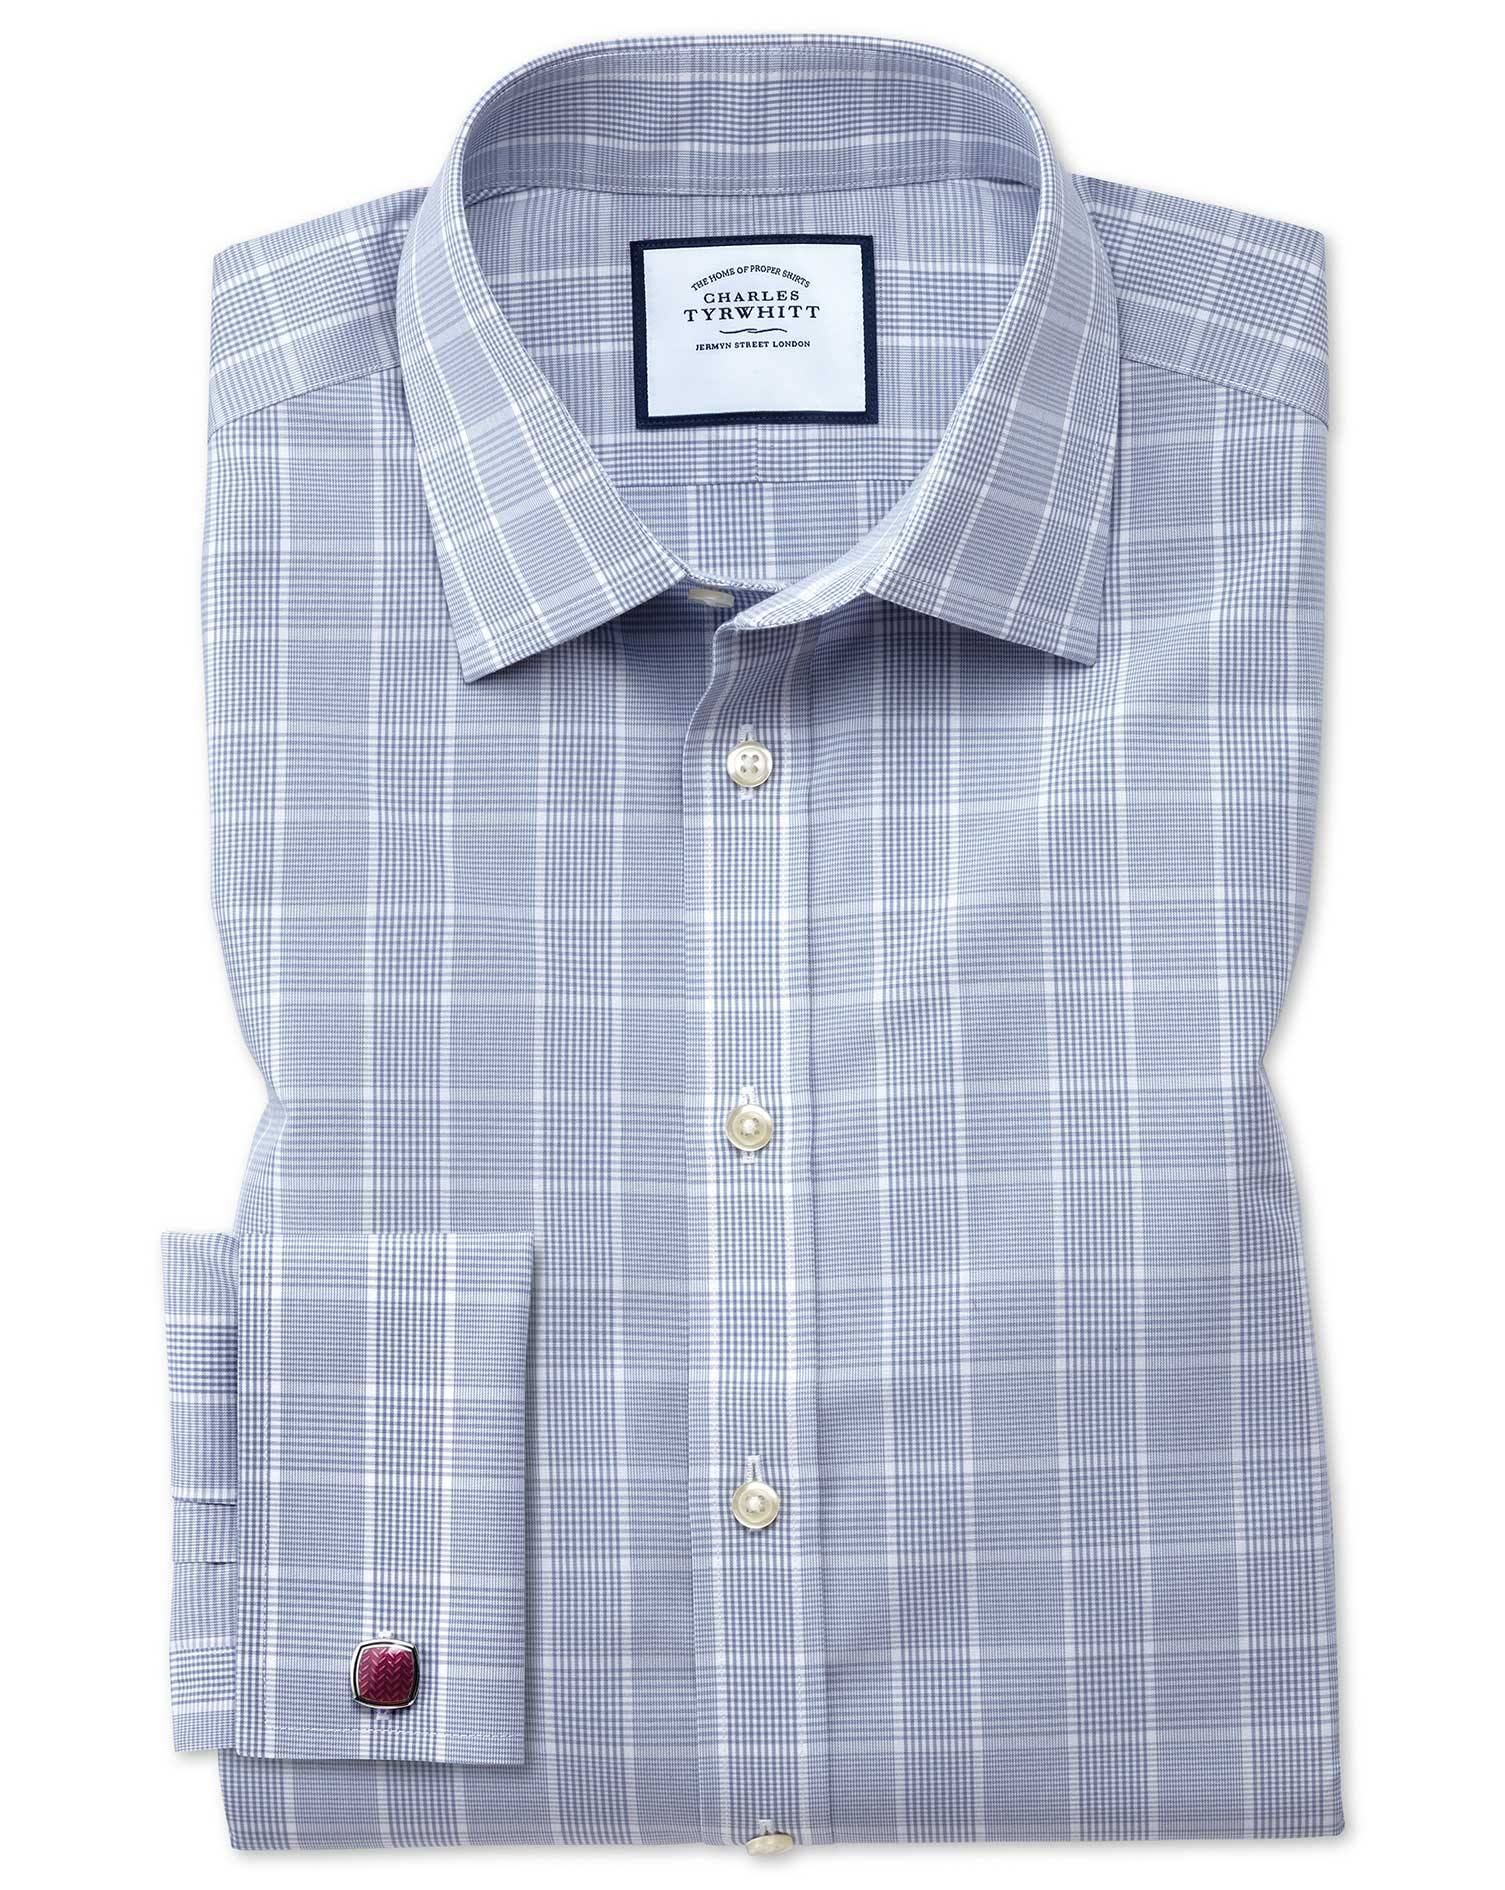 Classic Fit Non-Iron Prince Of Wales Grey Cotton Formal Shirt Single Cuff Size 17/35 by Charles Tyrw